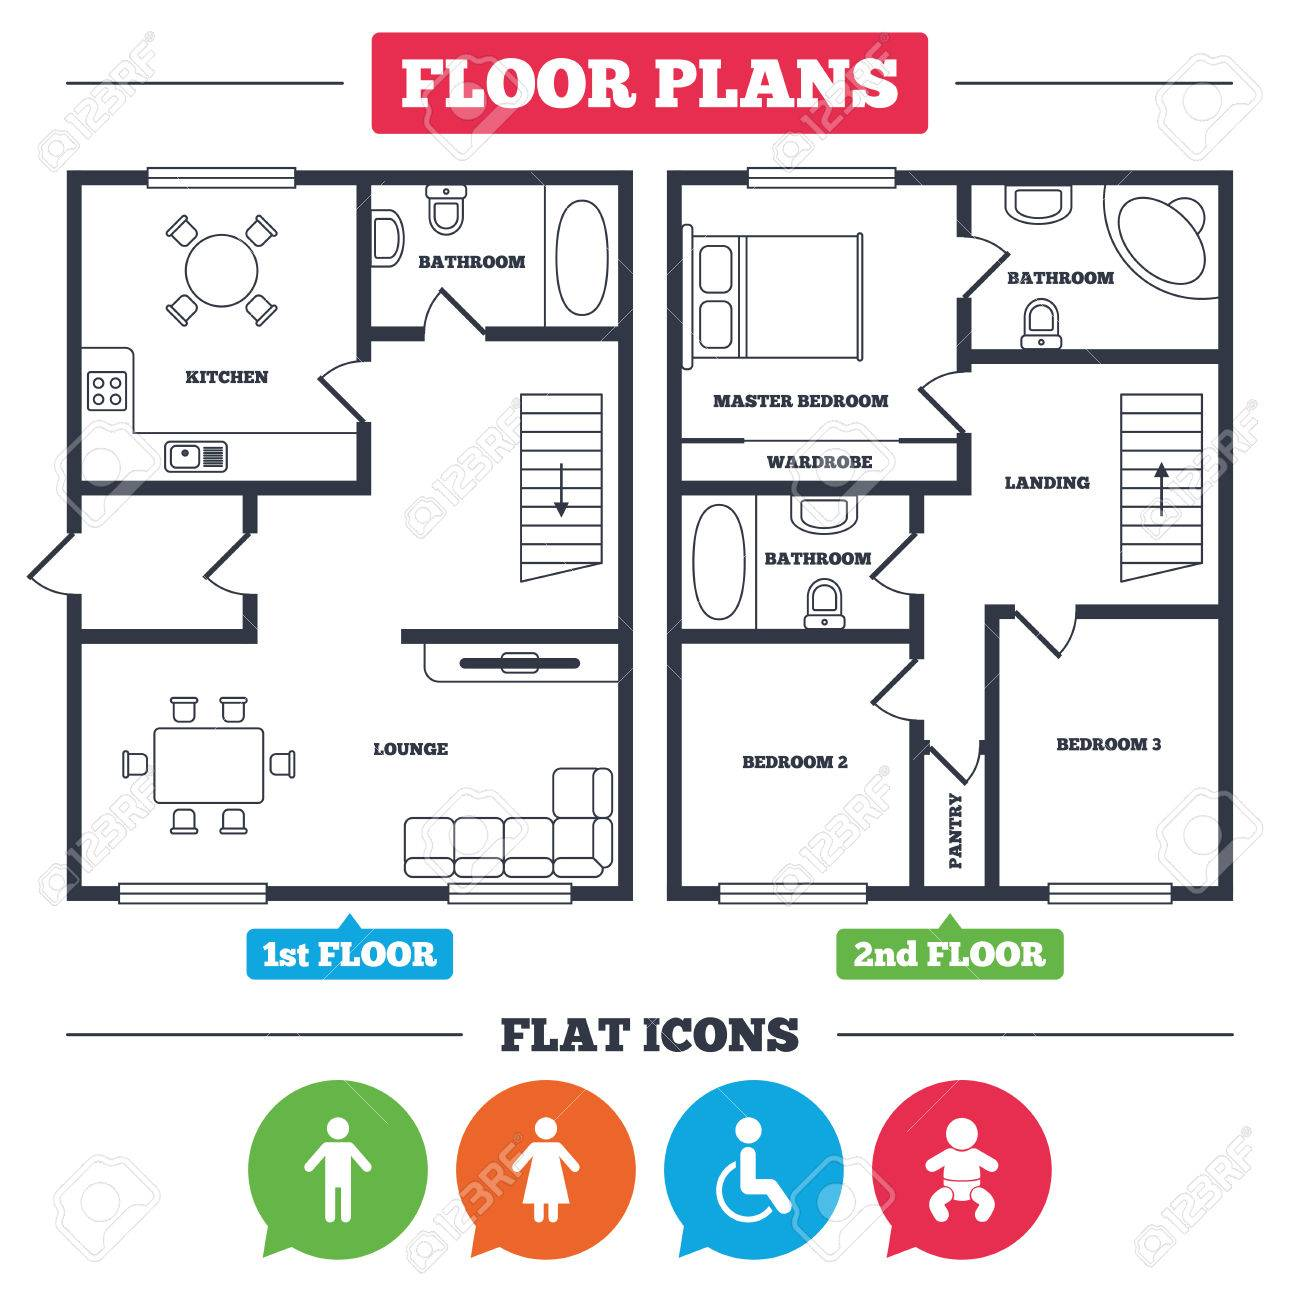 Wc Plan Architecture Plan With Furniture House Floor Plan Wc Toilet